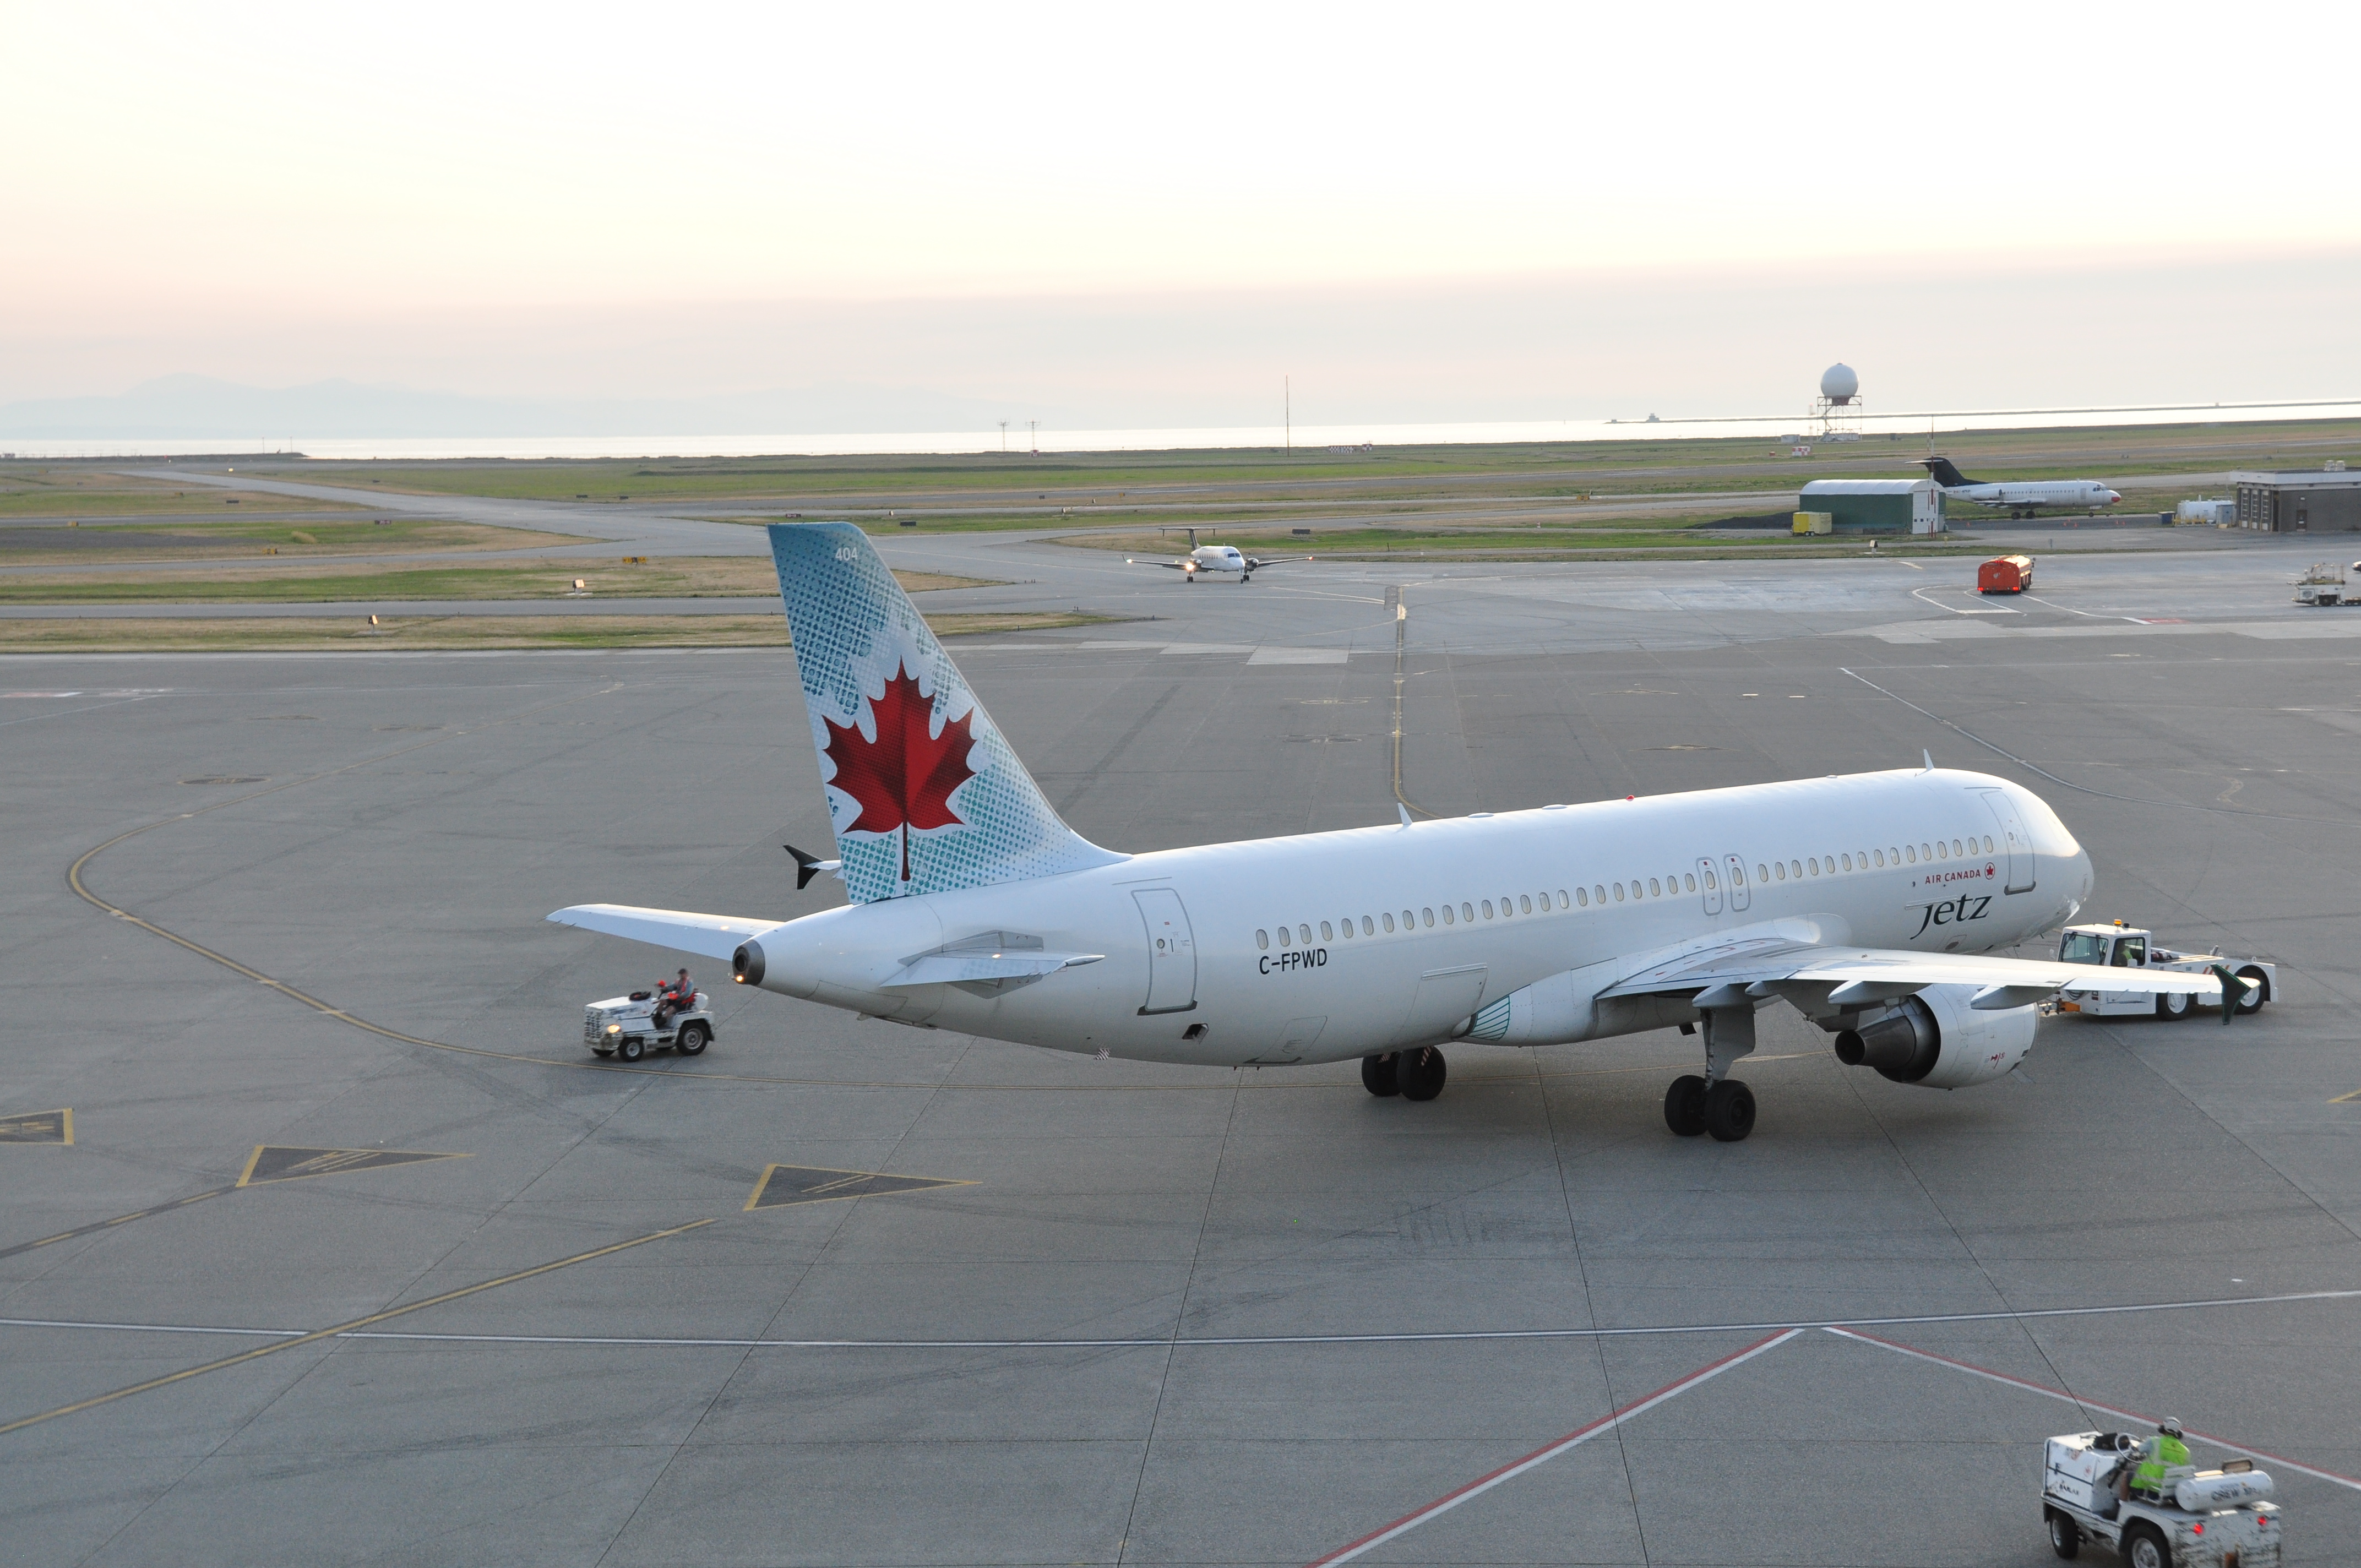 Air Canada Jetz C-FPWD